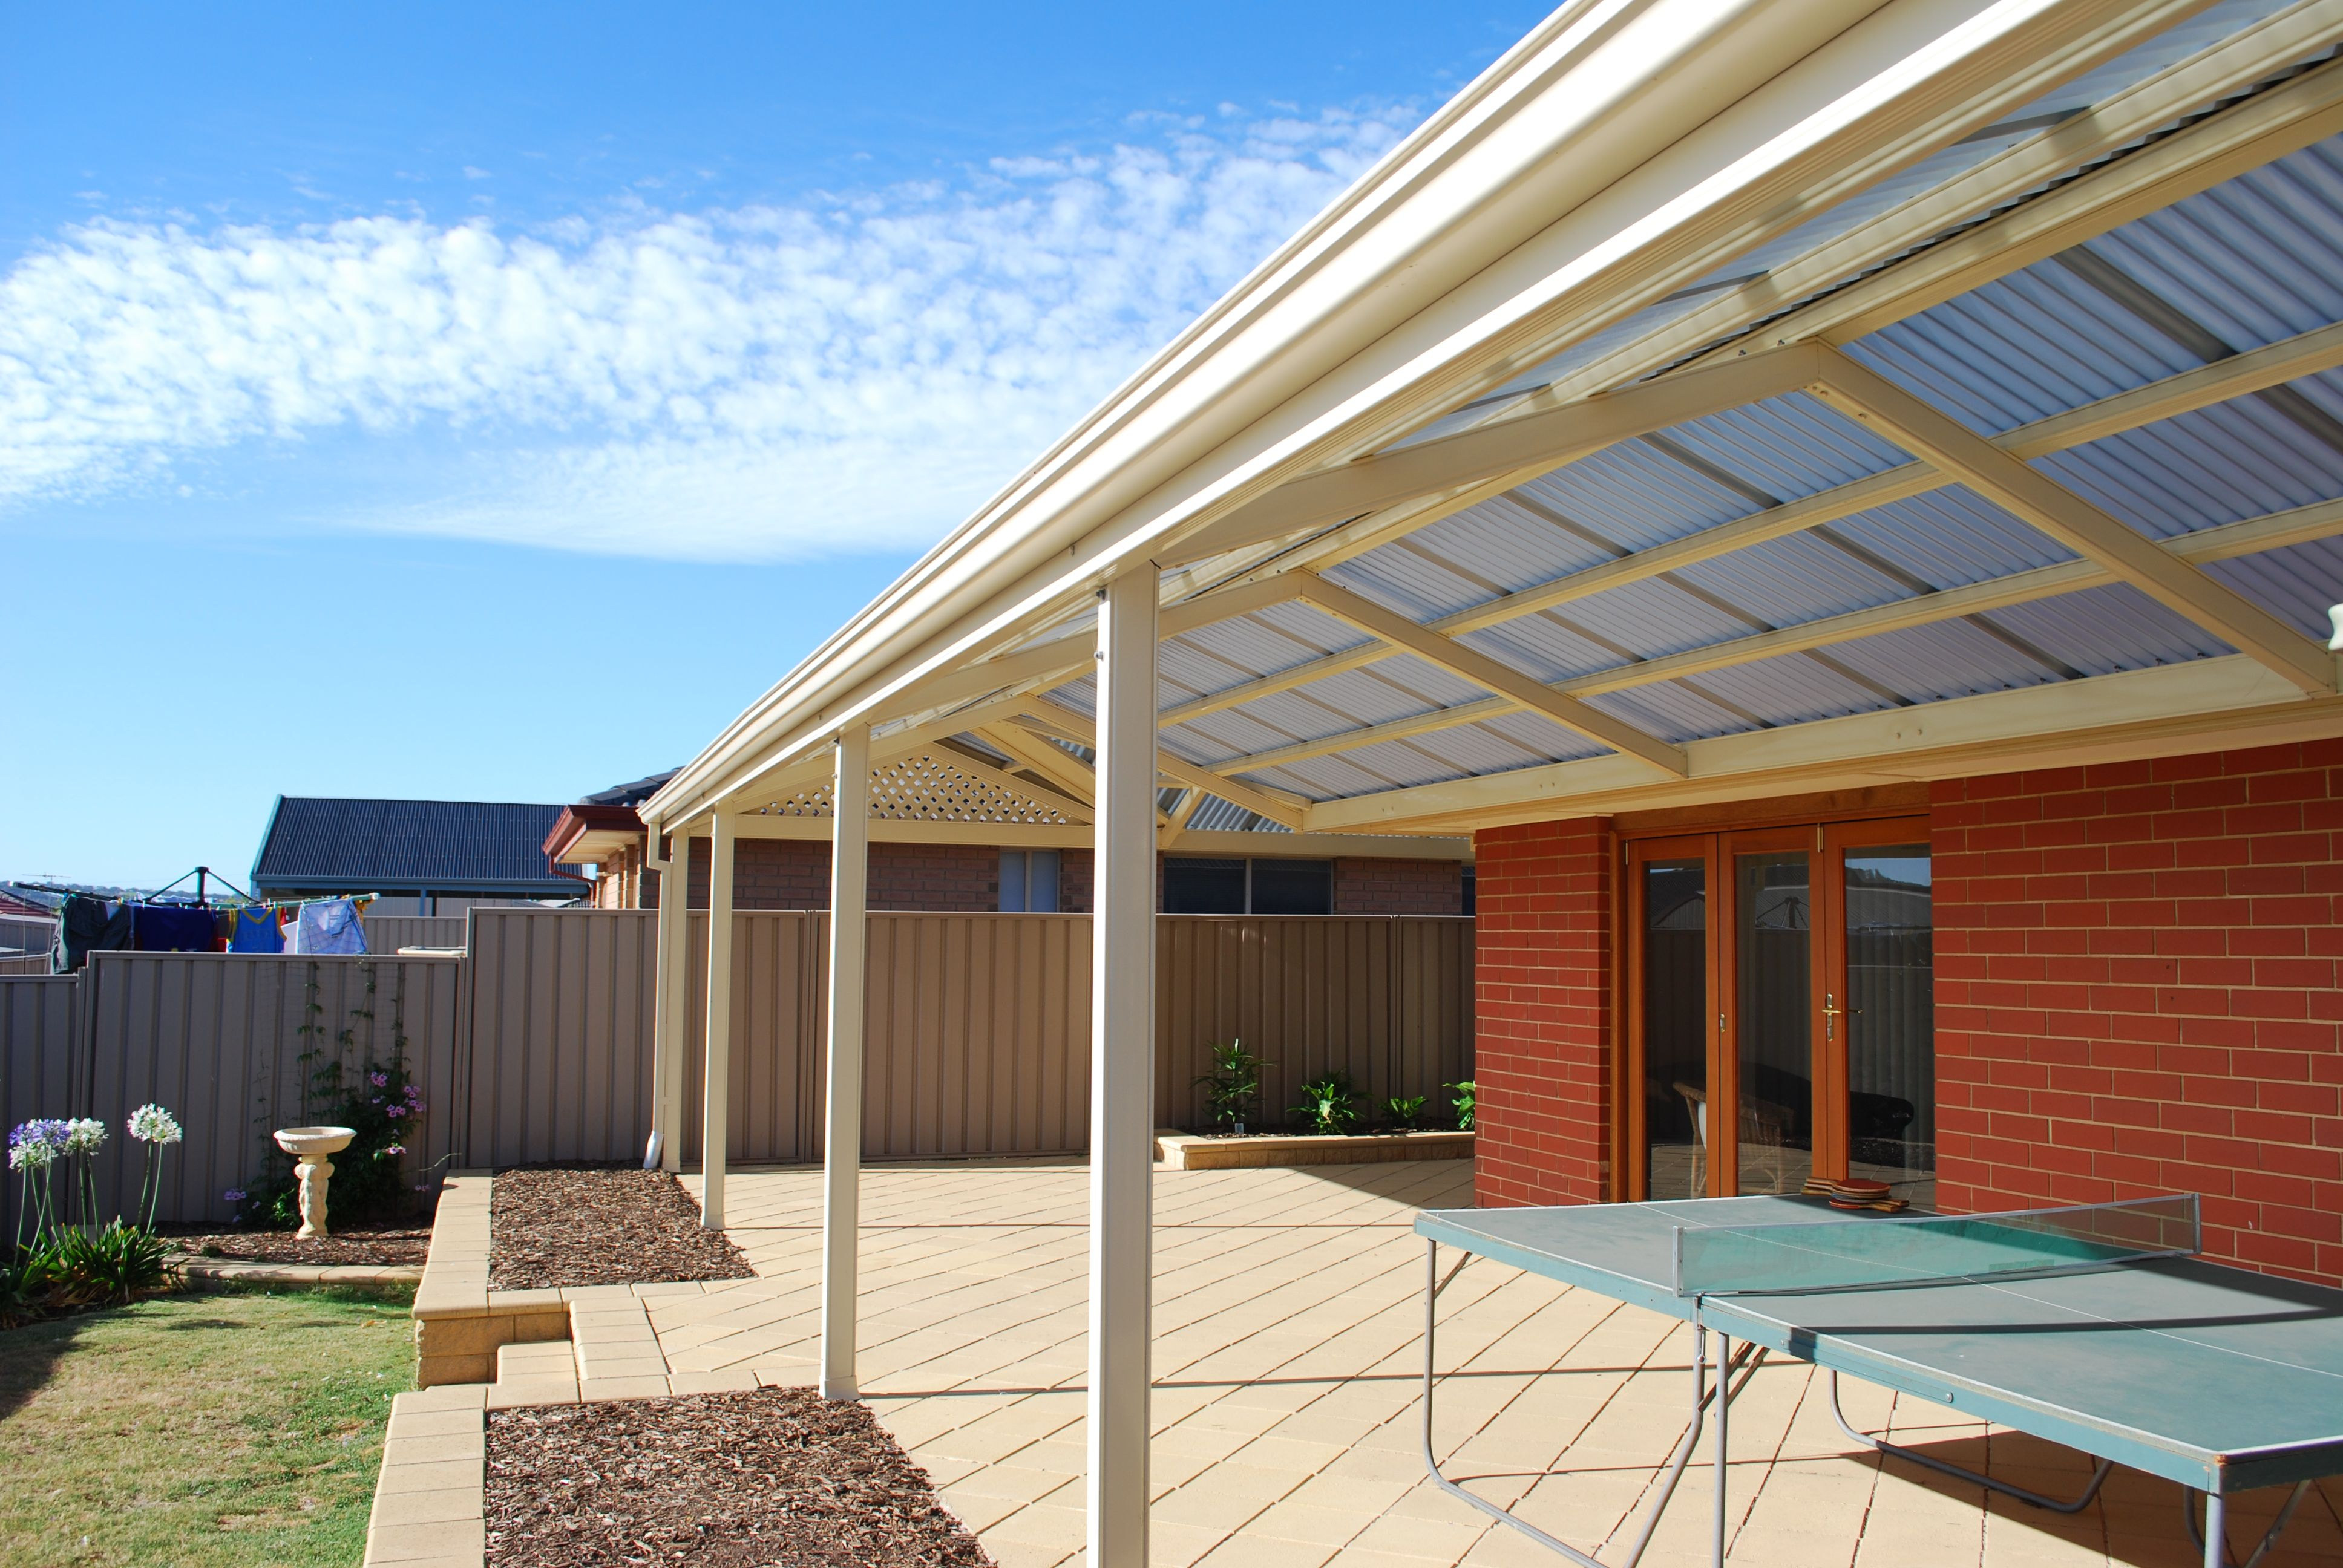 Colorbond roofing colours pictures to pin on pinterest - Polycarbonate Roofing Colorbond Steel Frame